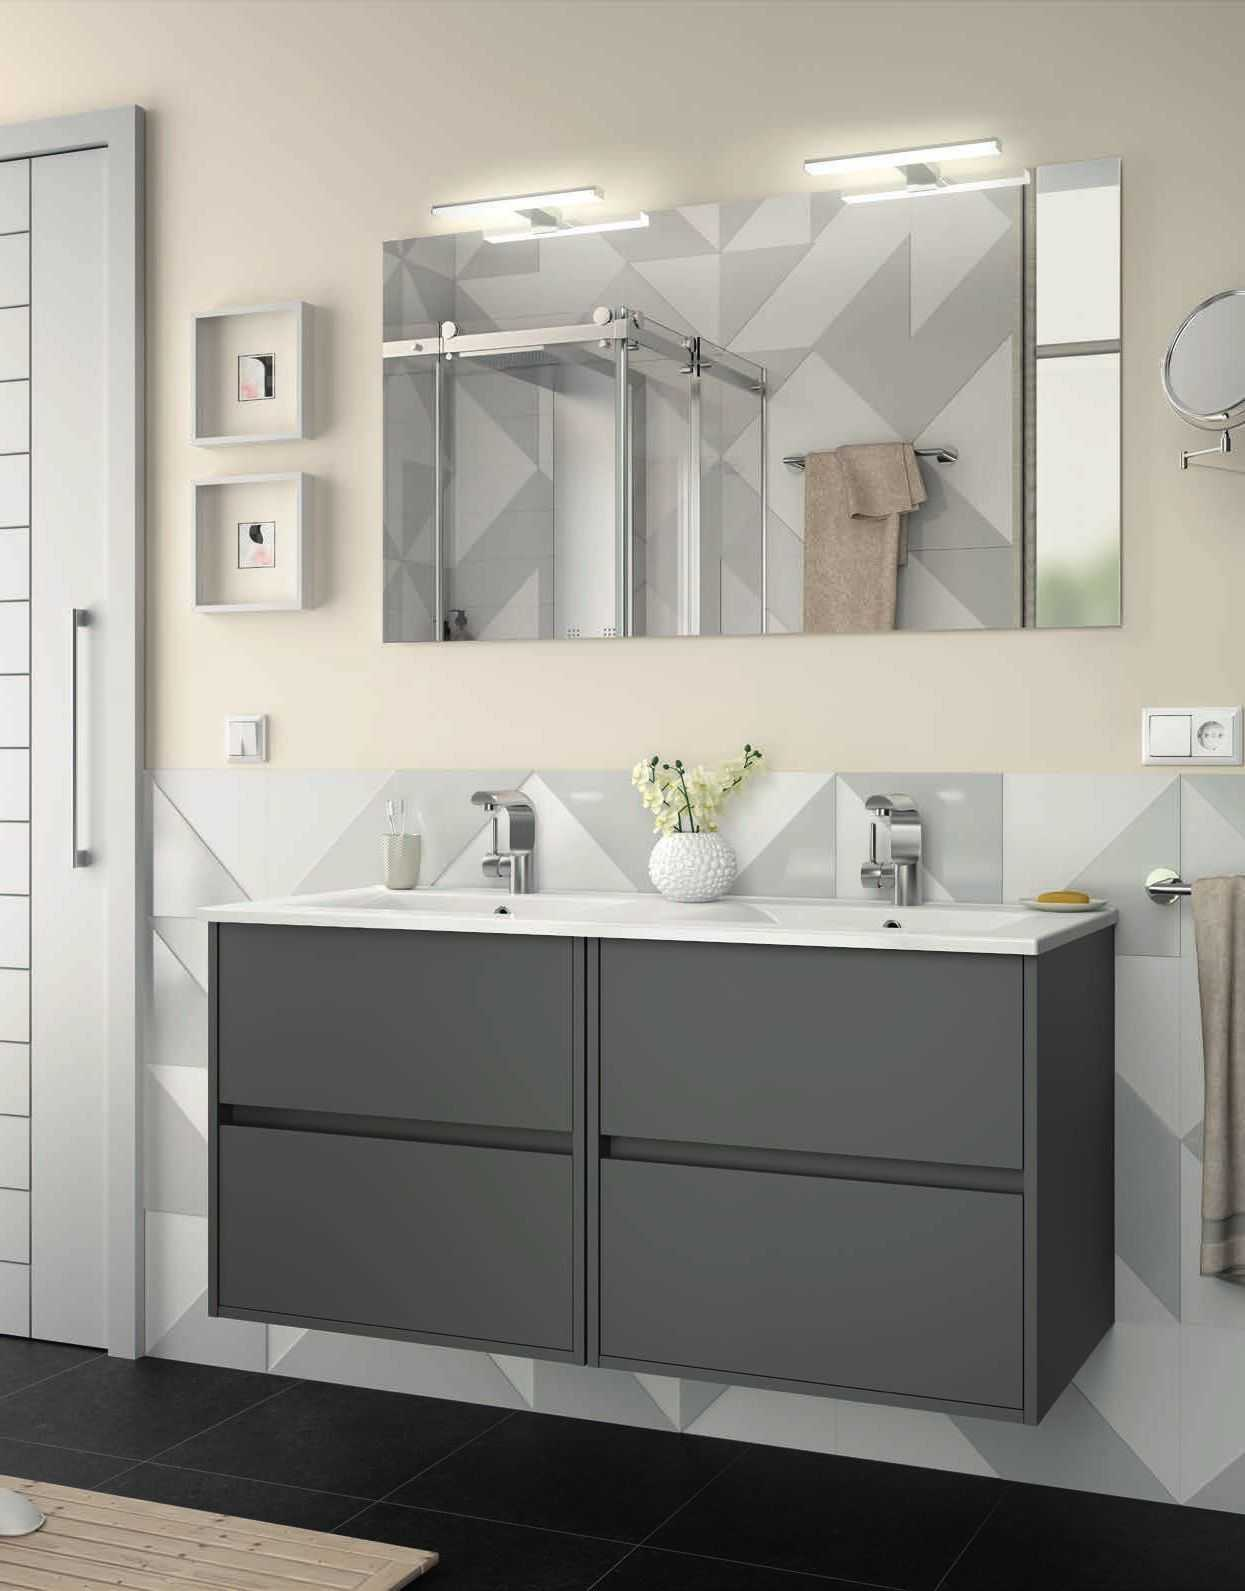 https://cdn.shopify.com/s/files/1/0448/2017/products/mobile_bagno_economico_noja1200_specchio.jpg?v=1531490551